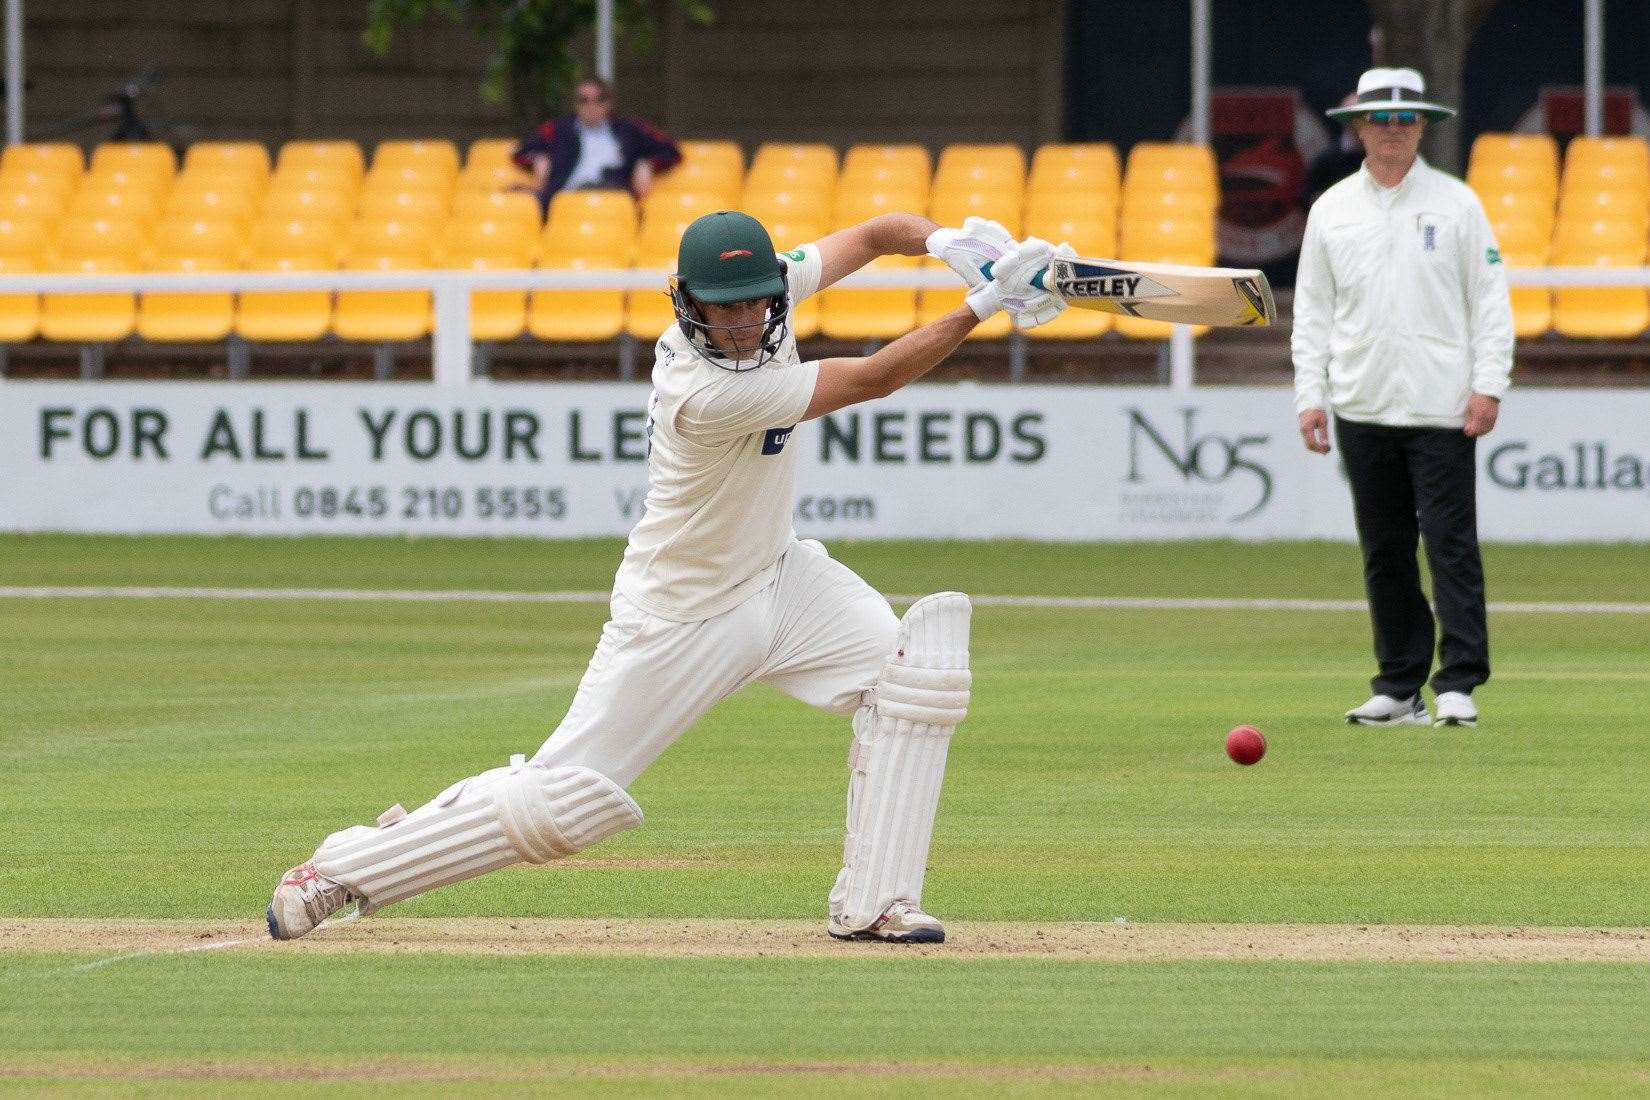 Neil Dexter, Suffolk's new white-ball professional, batting for Leicestershire last season Picture: Leicestershire CCC (21981487)